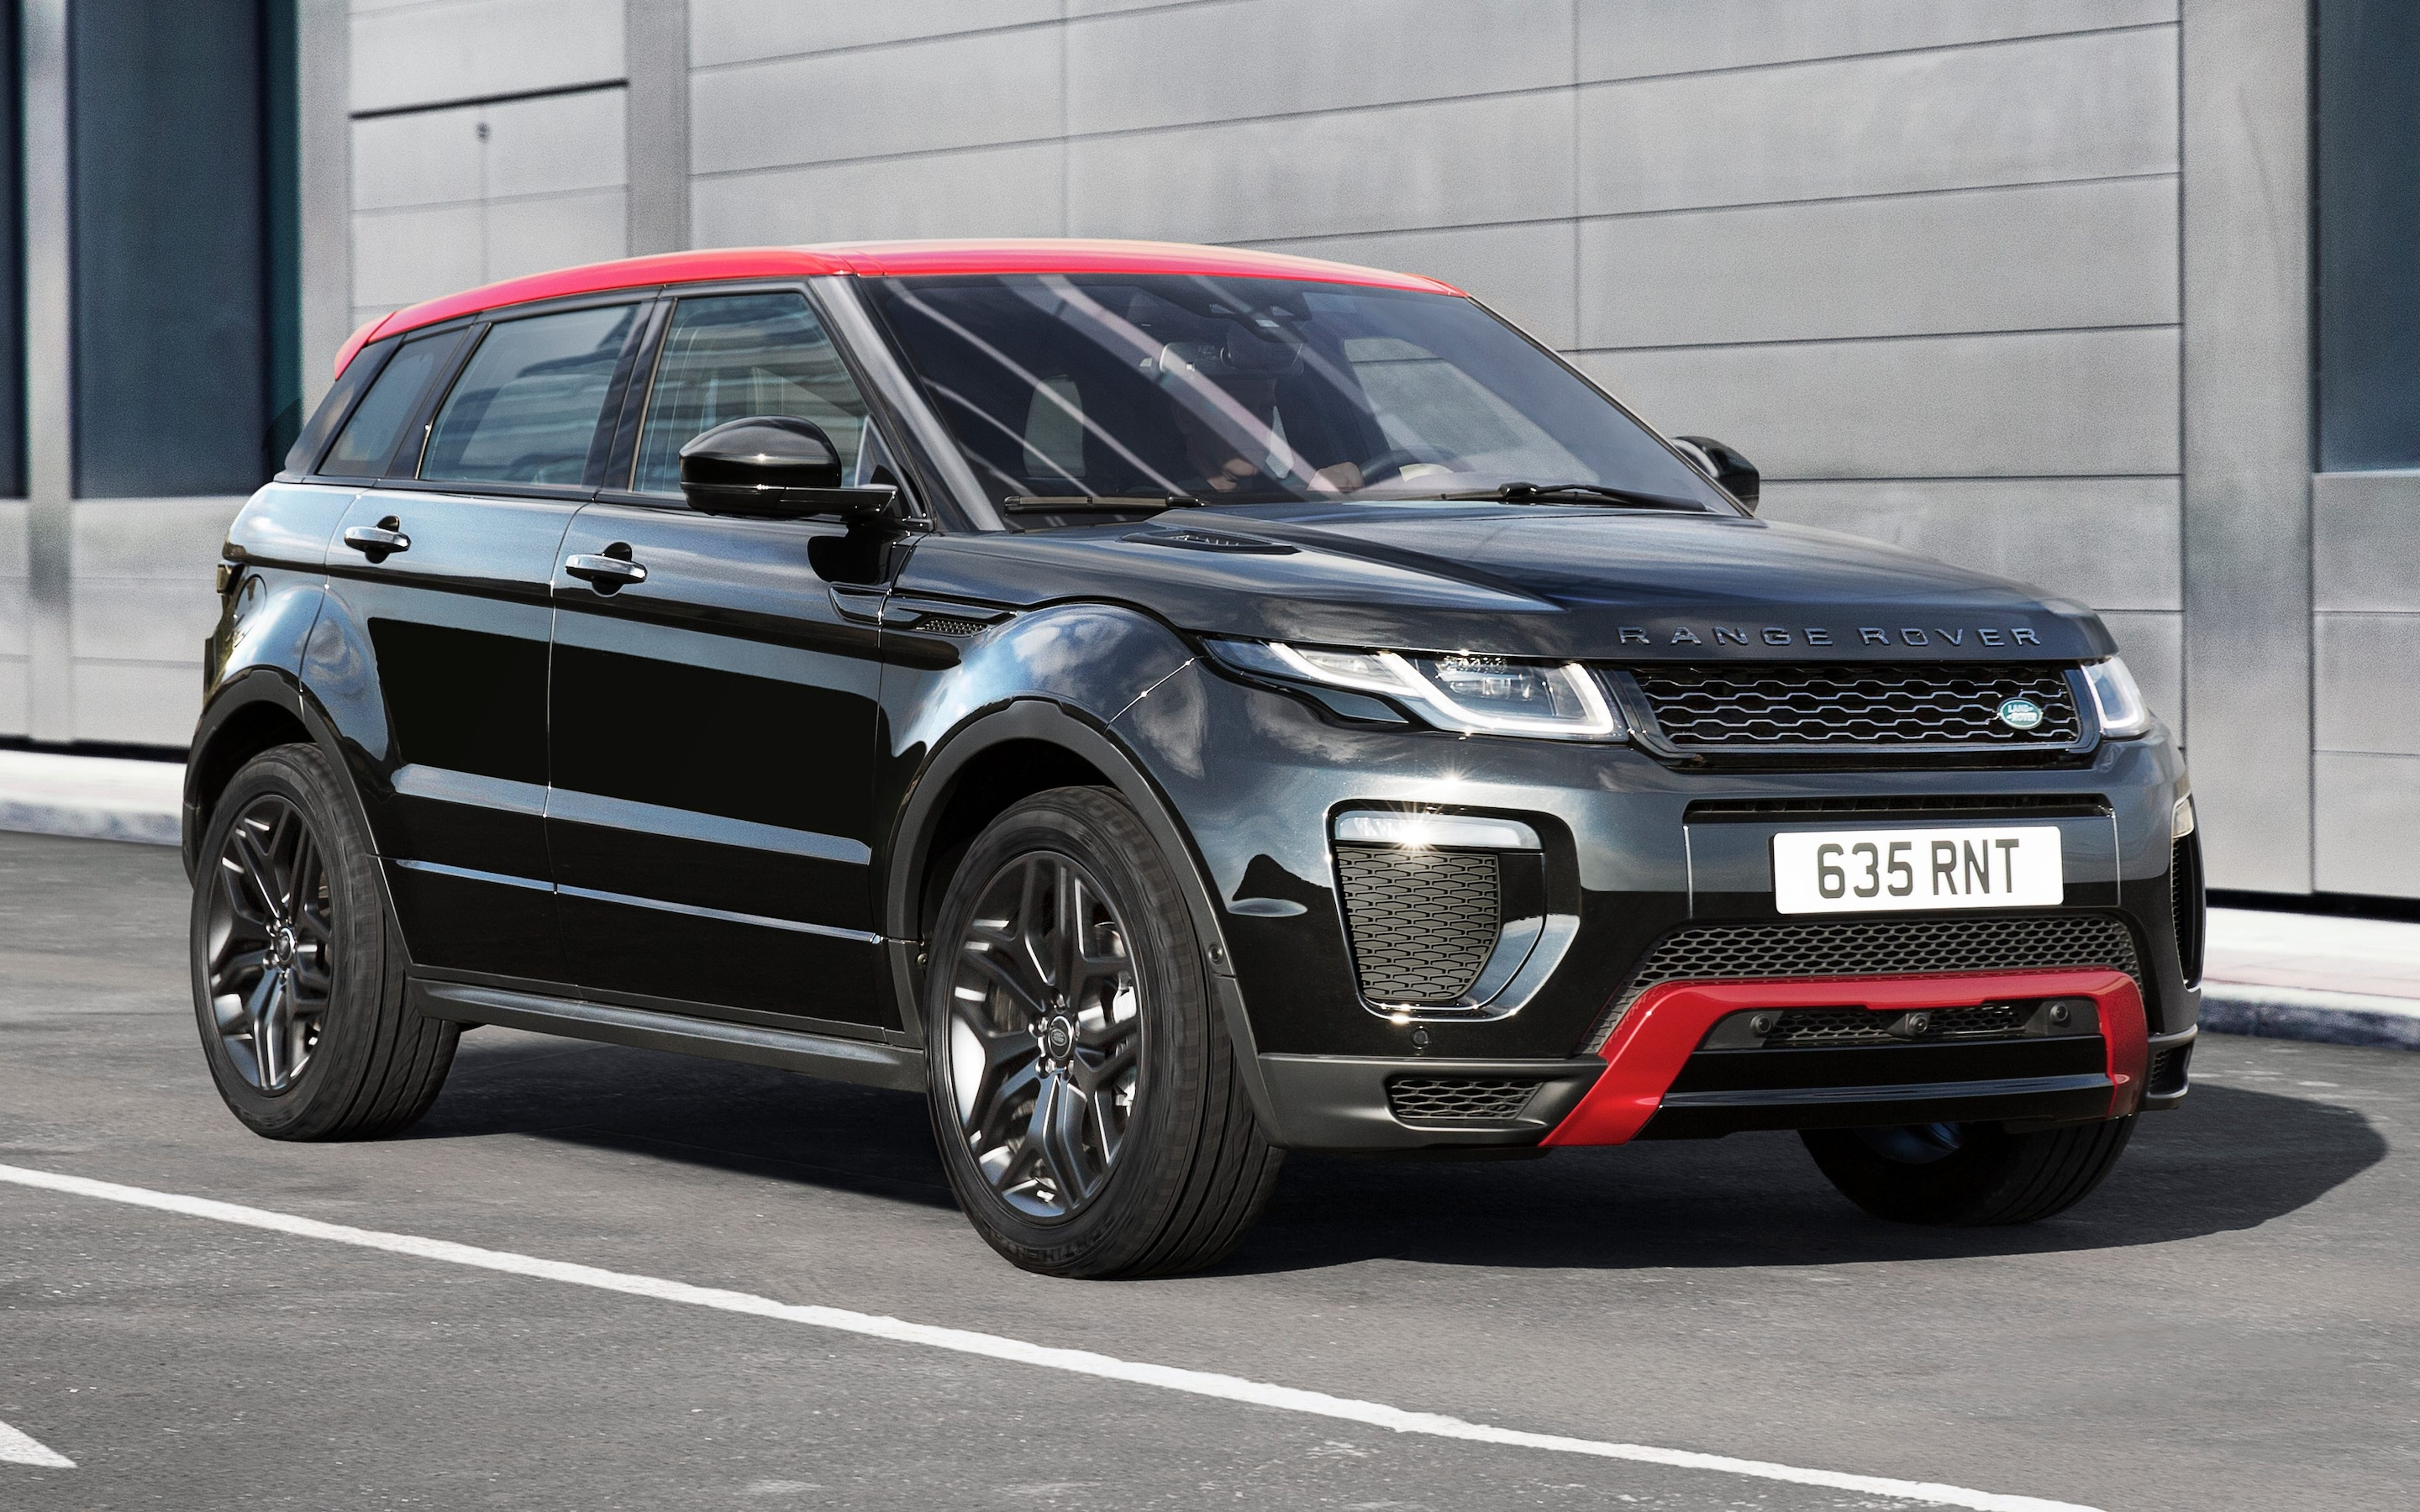 Project Cars 2 Deluxe Edition Wallpaper Range Rover Evoque Review Classier Than A Bmw X1 Or X3